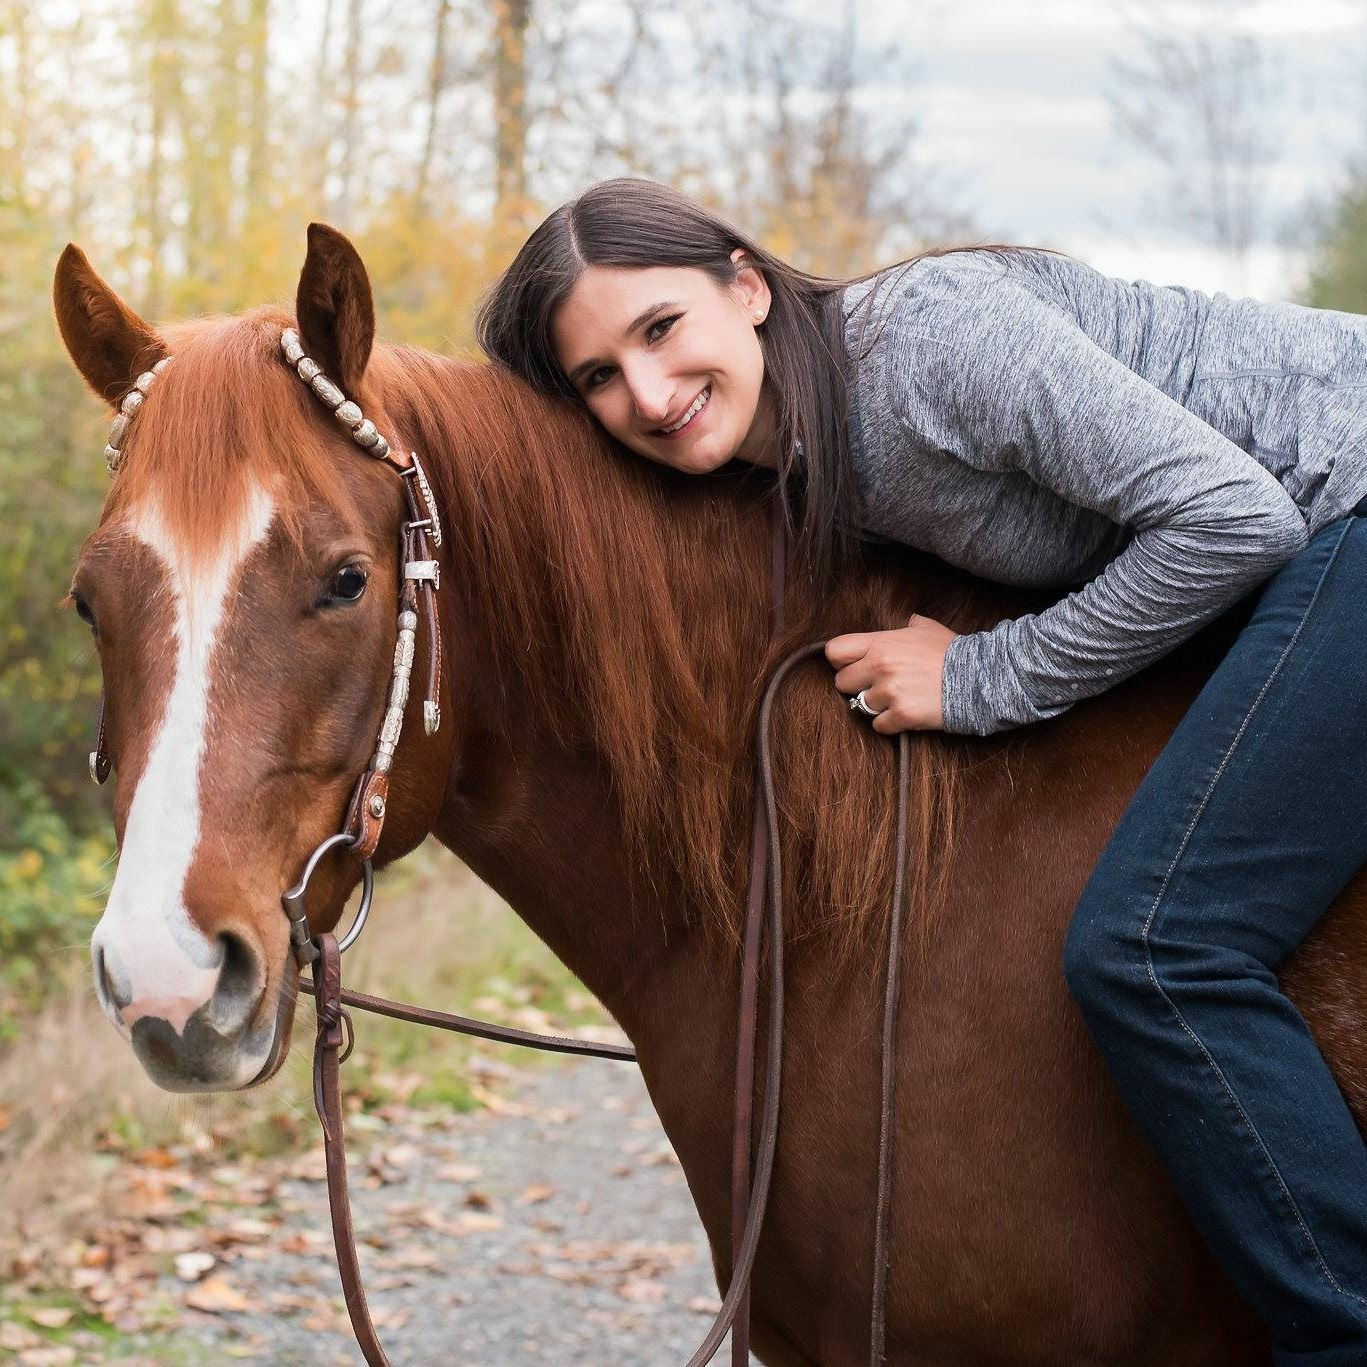 Hi, I'm Jessica aka The Equine Esquire. As your local horse and animal attorney, I hope to serve the unique needs of our equine community through long-term relationships and compassion.